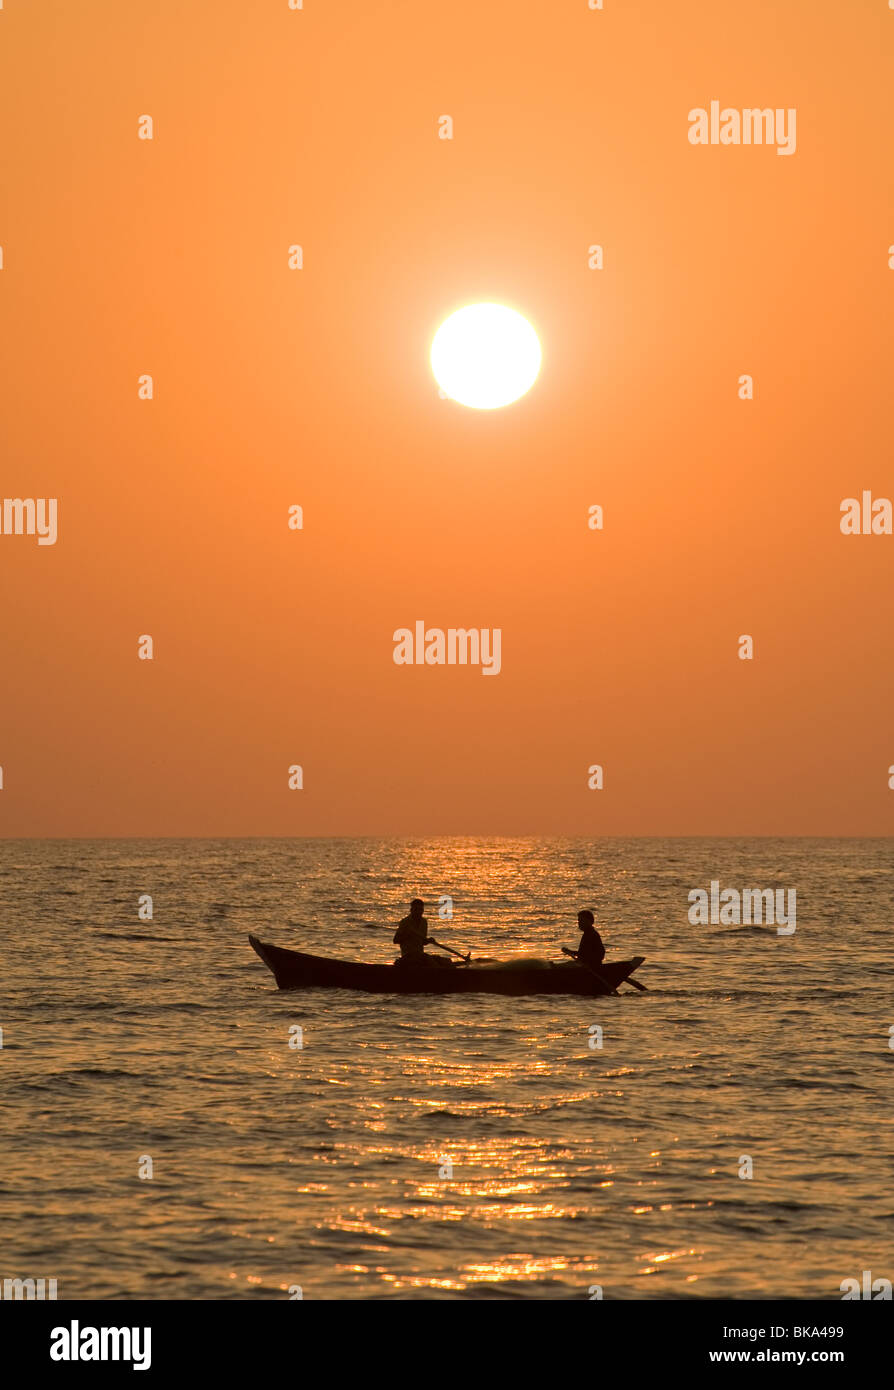 Two people in a boat in the sea at sunset - Stock Image